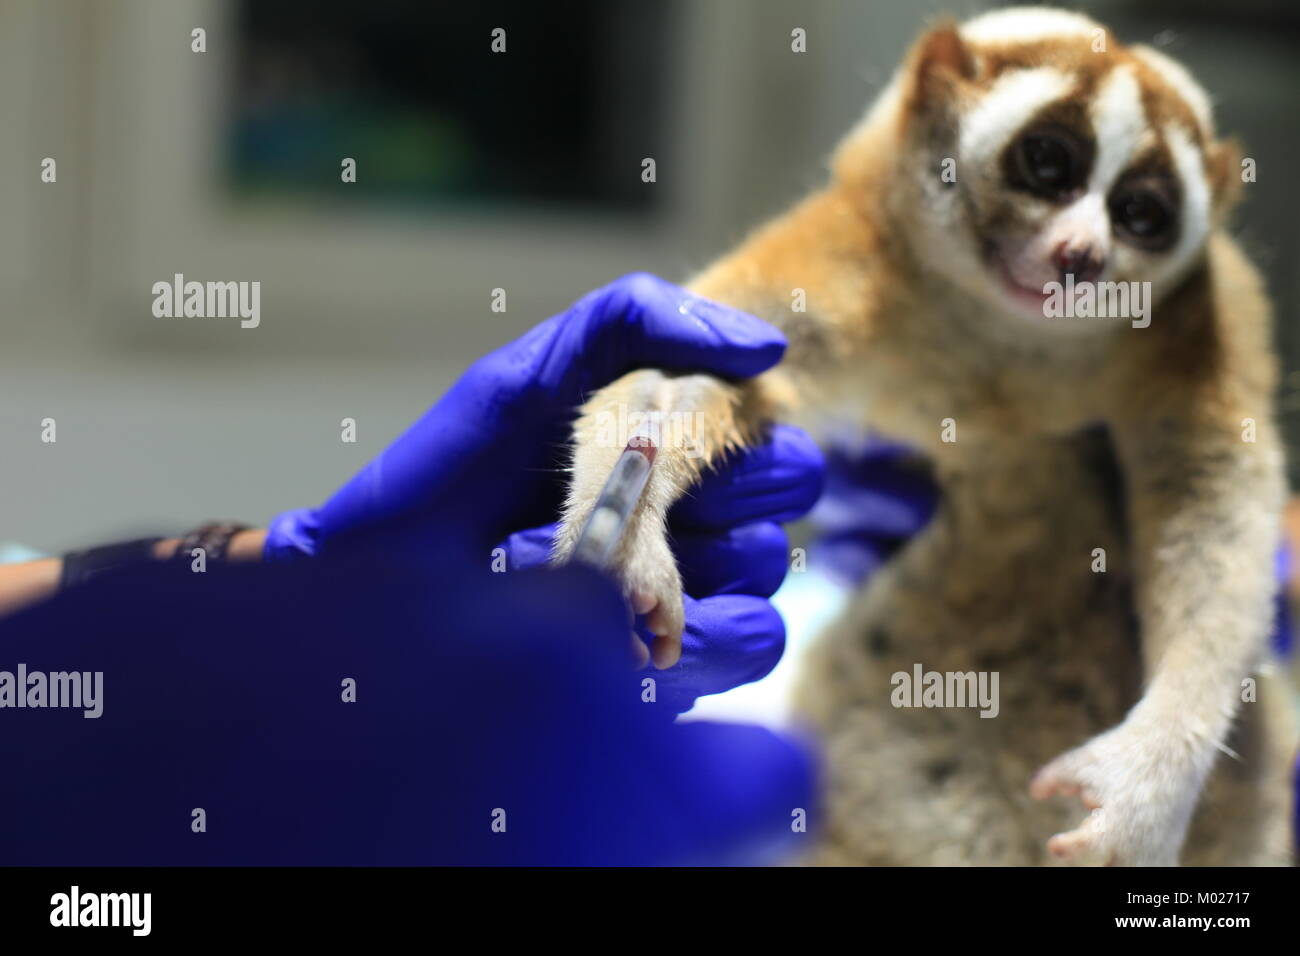 The veterinarian takes blood samples of the slow loris for medical purposes. - Stock Image